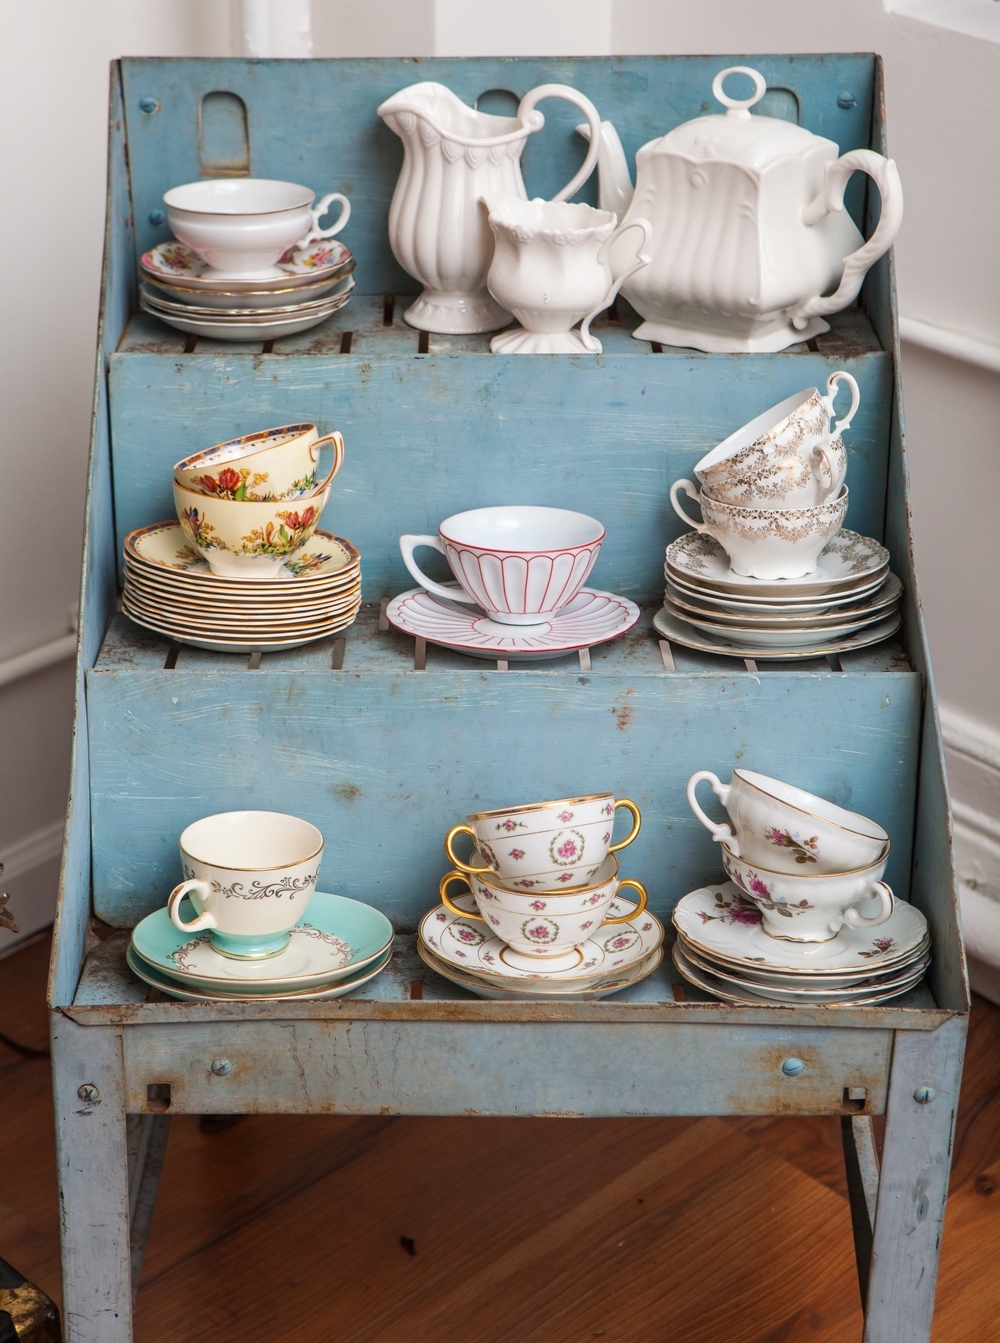 TEA CUPS ON PLANT RACK